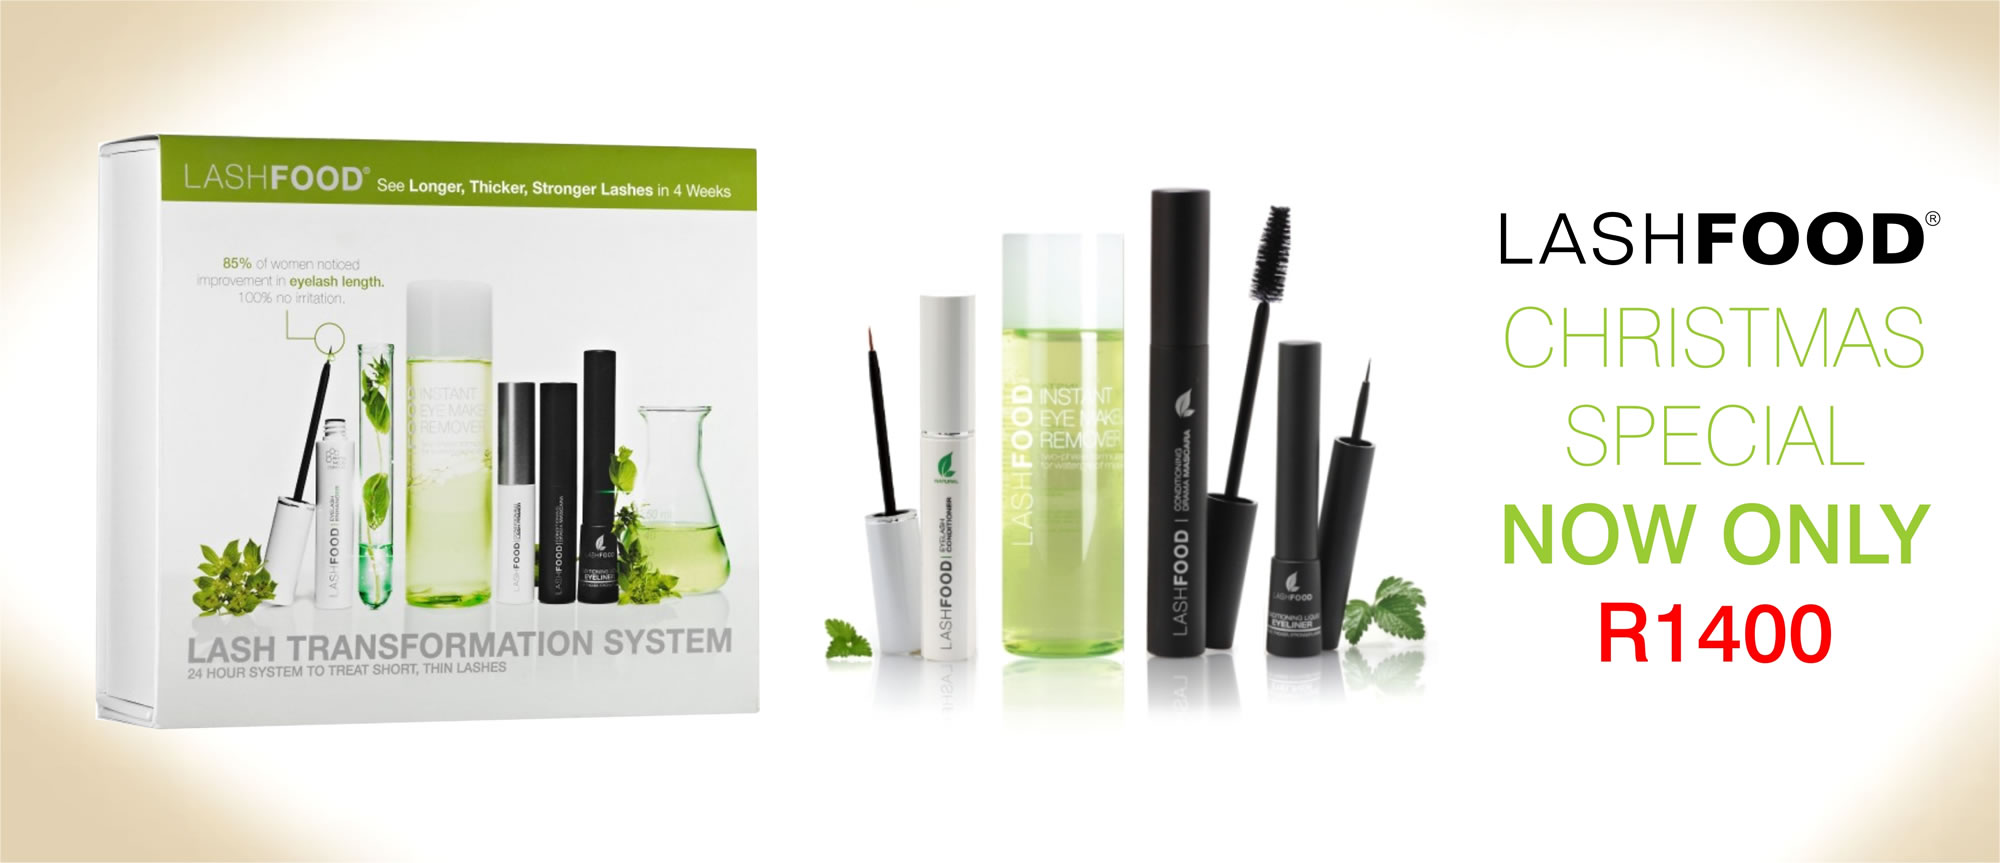 Lash food, lash growth serum